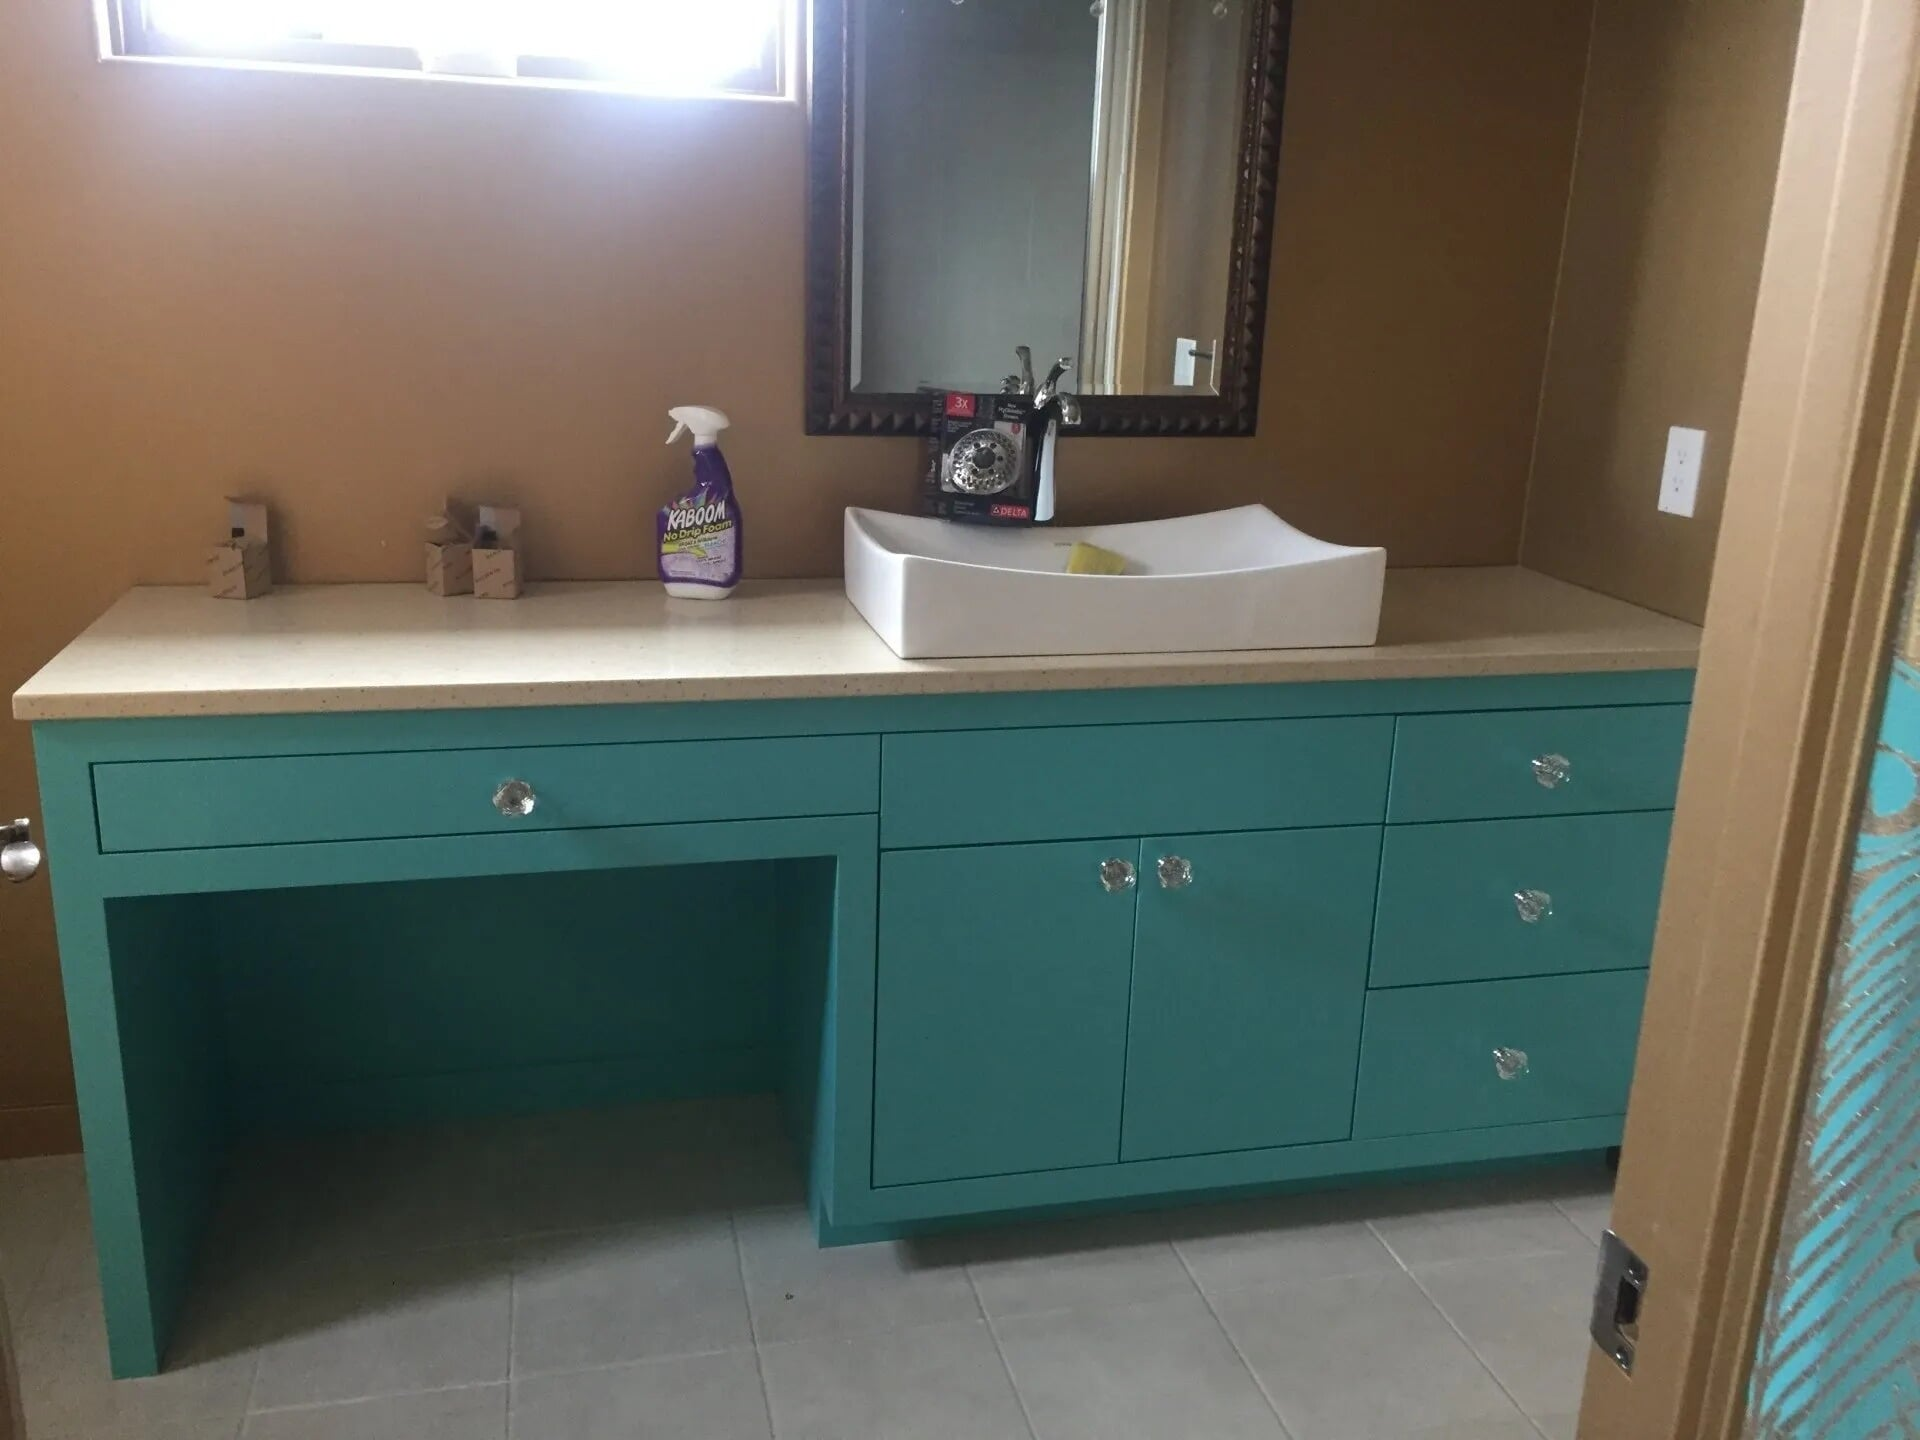 Bathroom vanity installation in Burnsville, MN from Infinite Floors and More